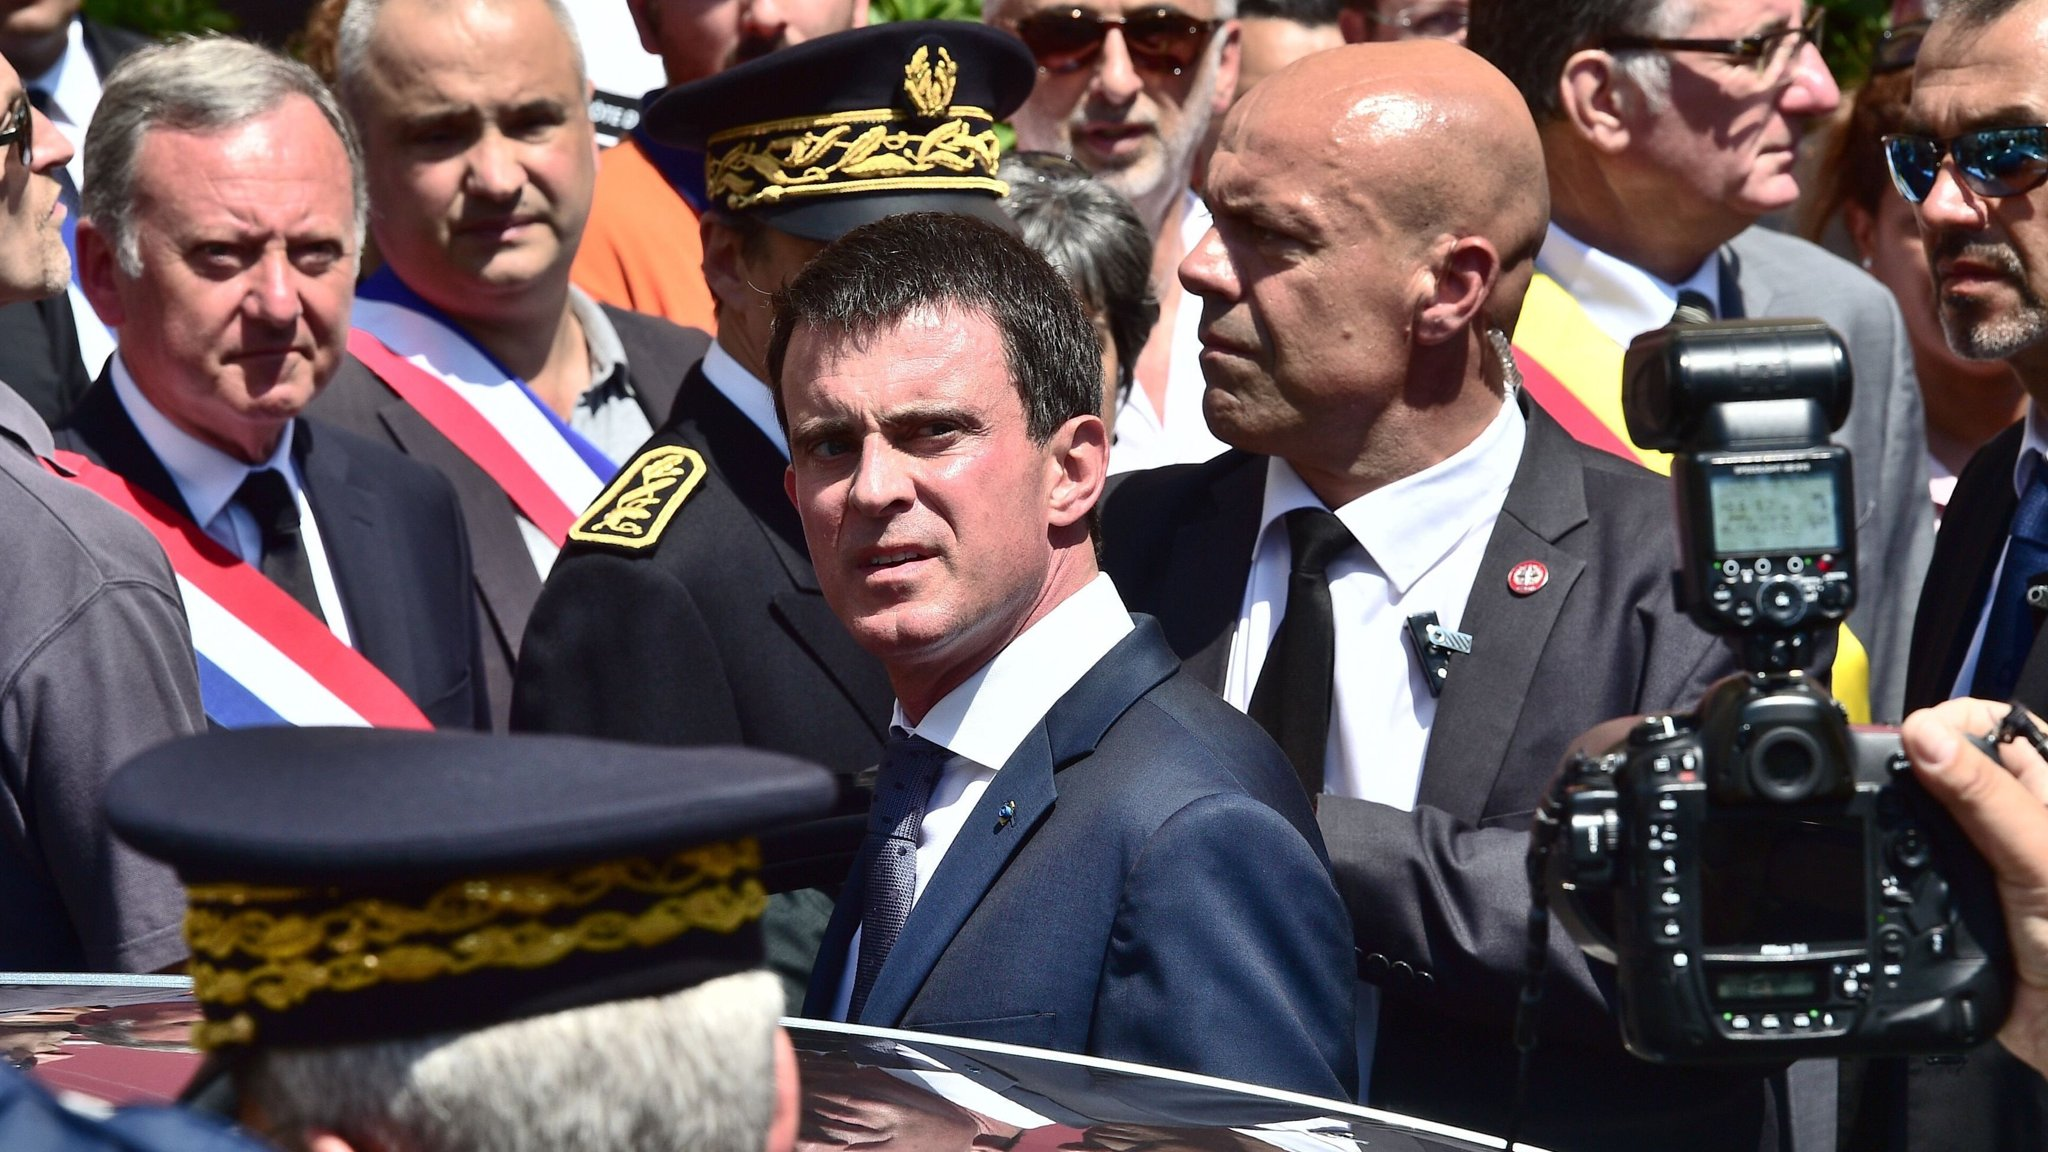 French Pm Valls Booed As He Attends Tribute To Nice Victims Financial Times